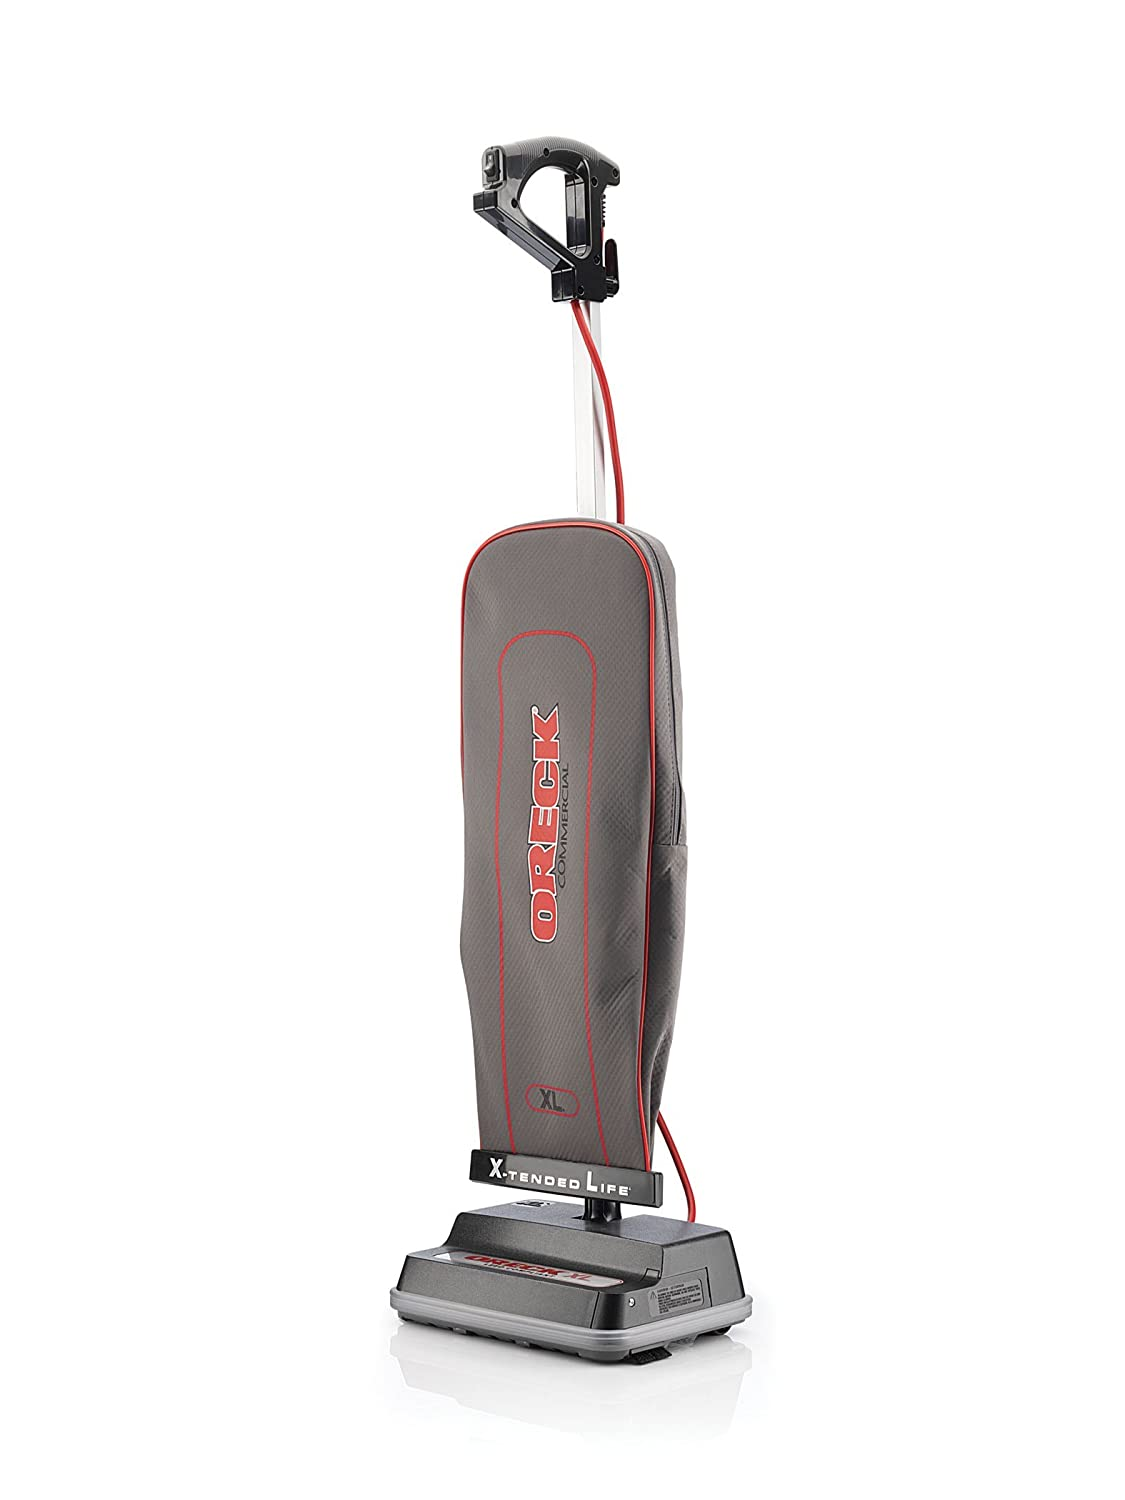 Oreck Commercial U2000RB2L-1 LEED-Compliant Upright Vacuum: Household  Upright Vacuums: Amazon.com: Industrial & Scientific